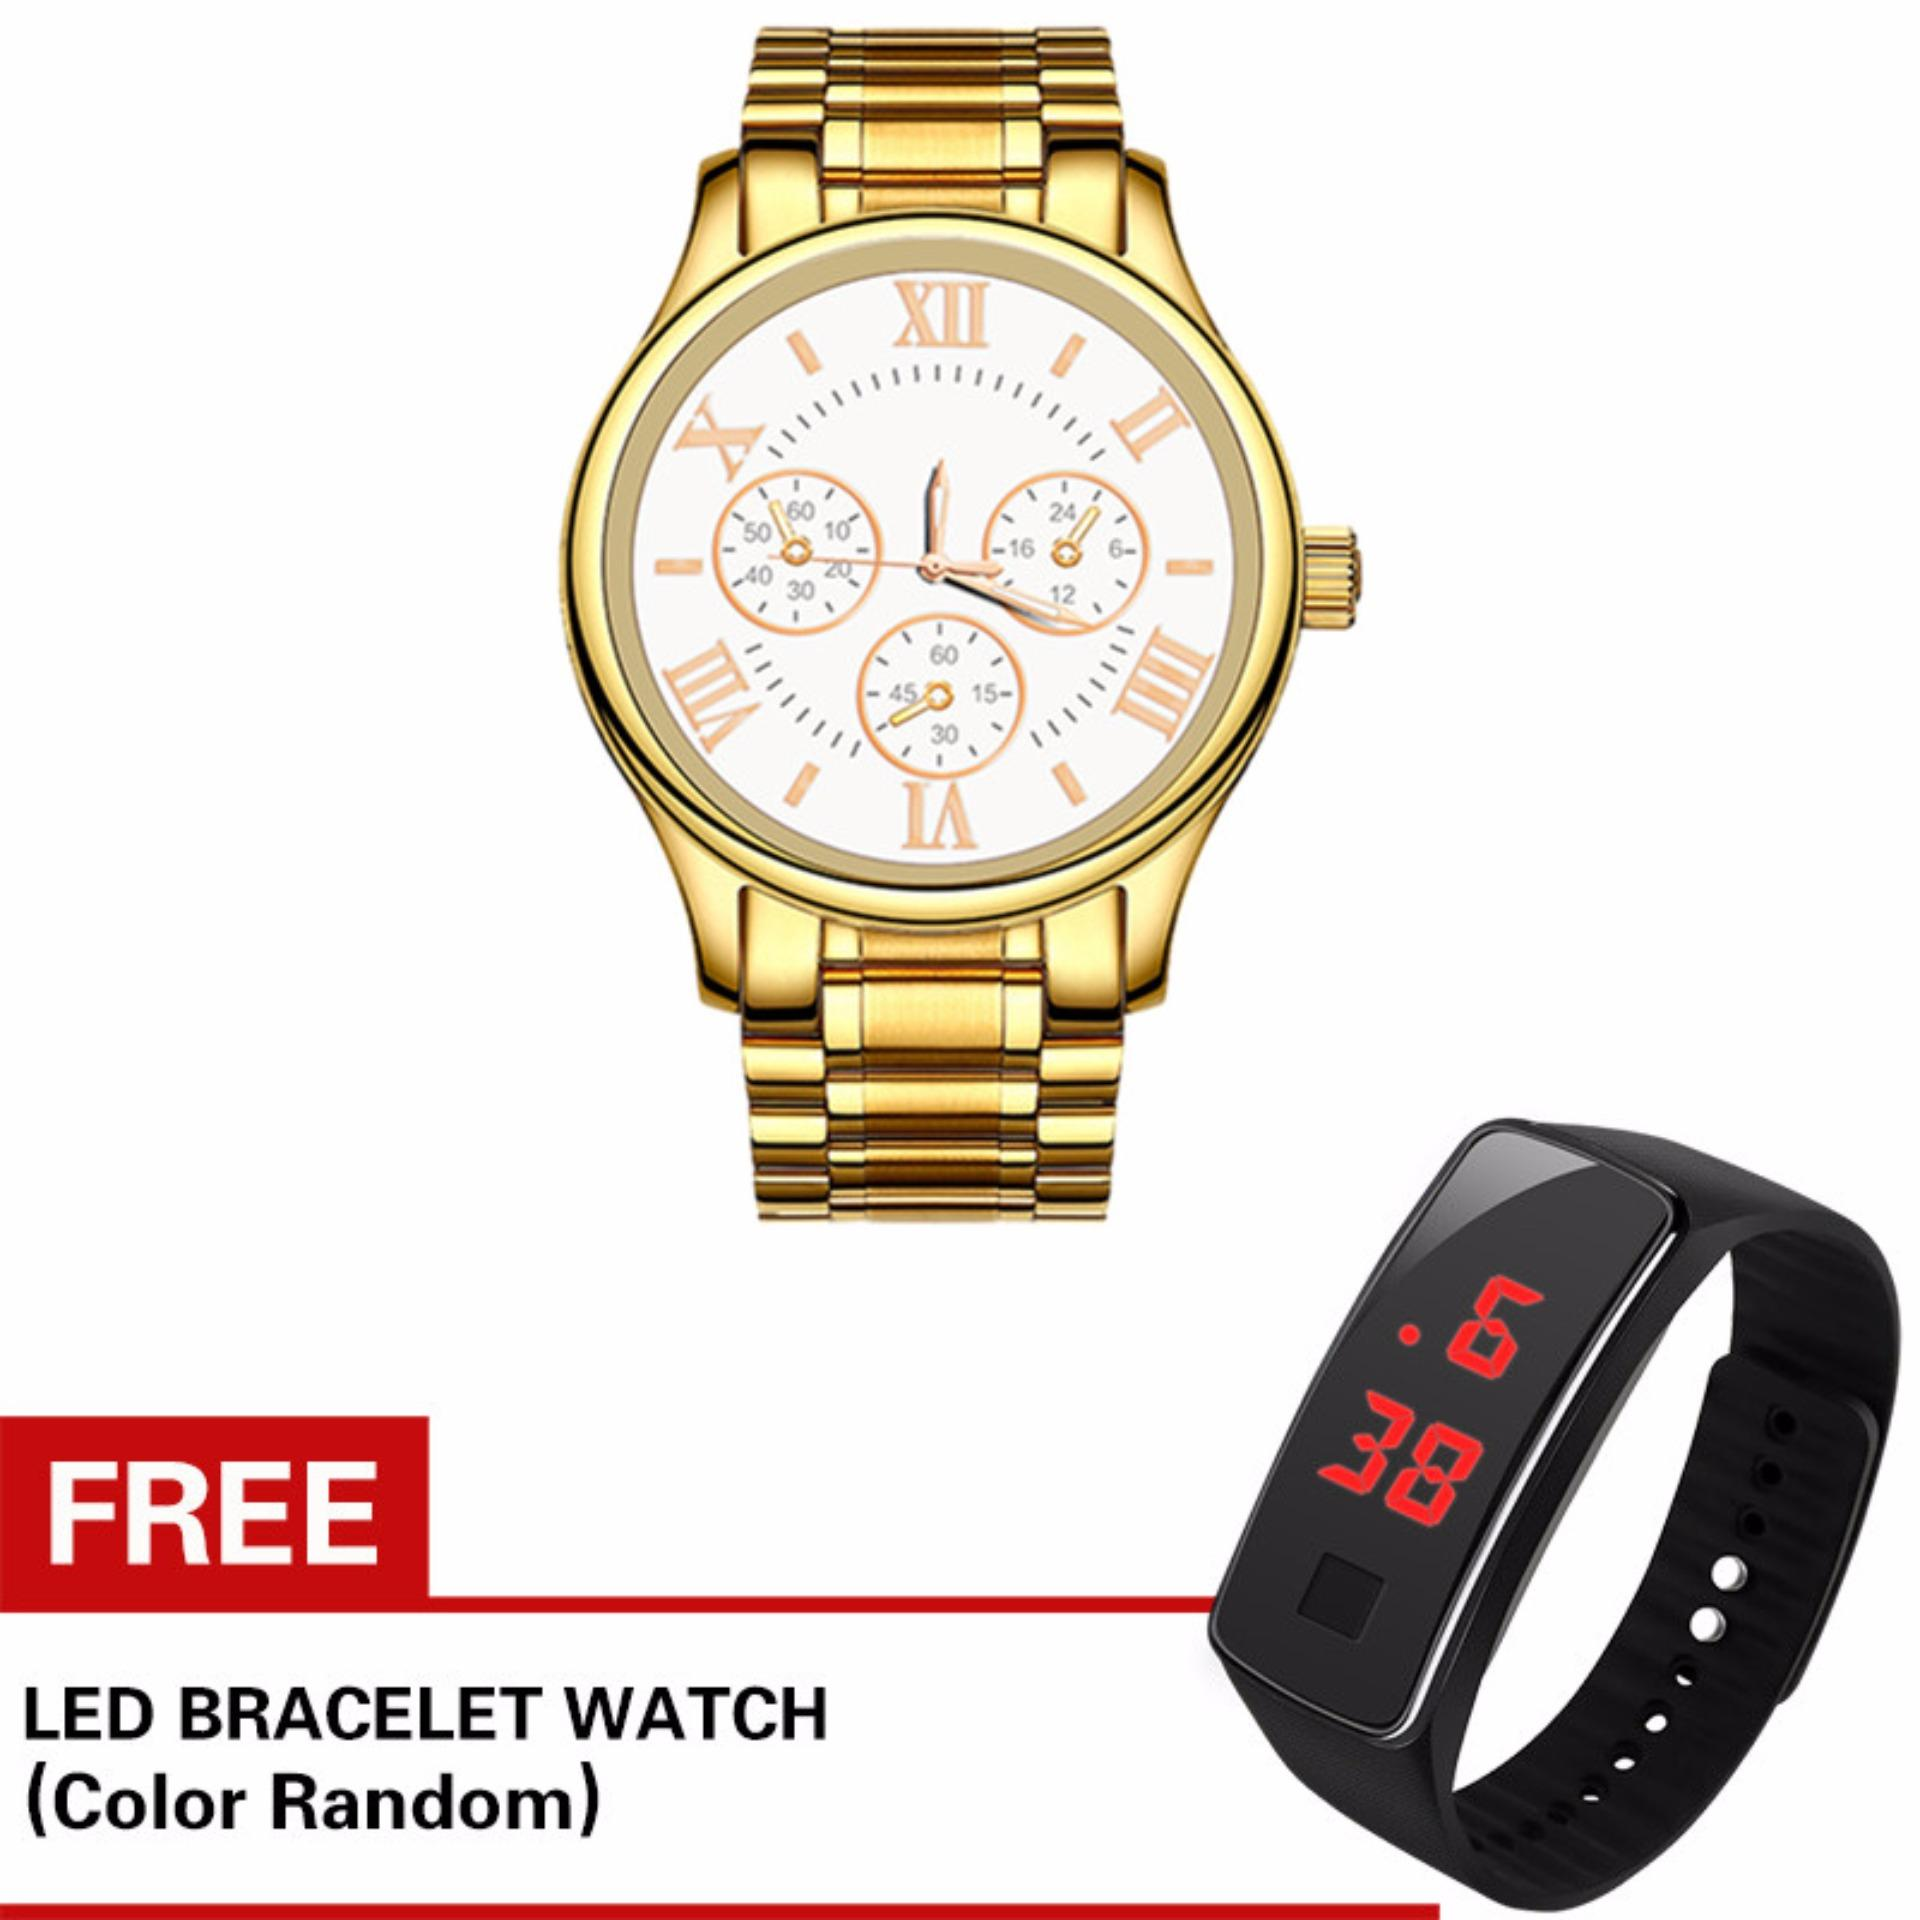 Fashion Business Men's Watch with Free Kids watch